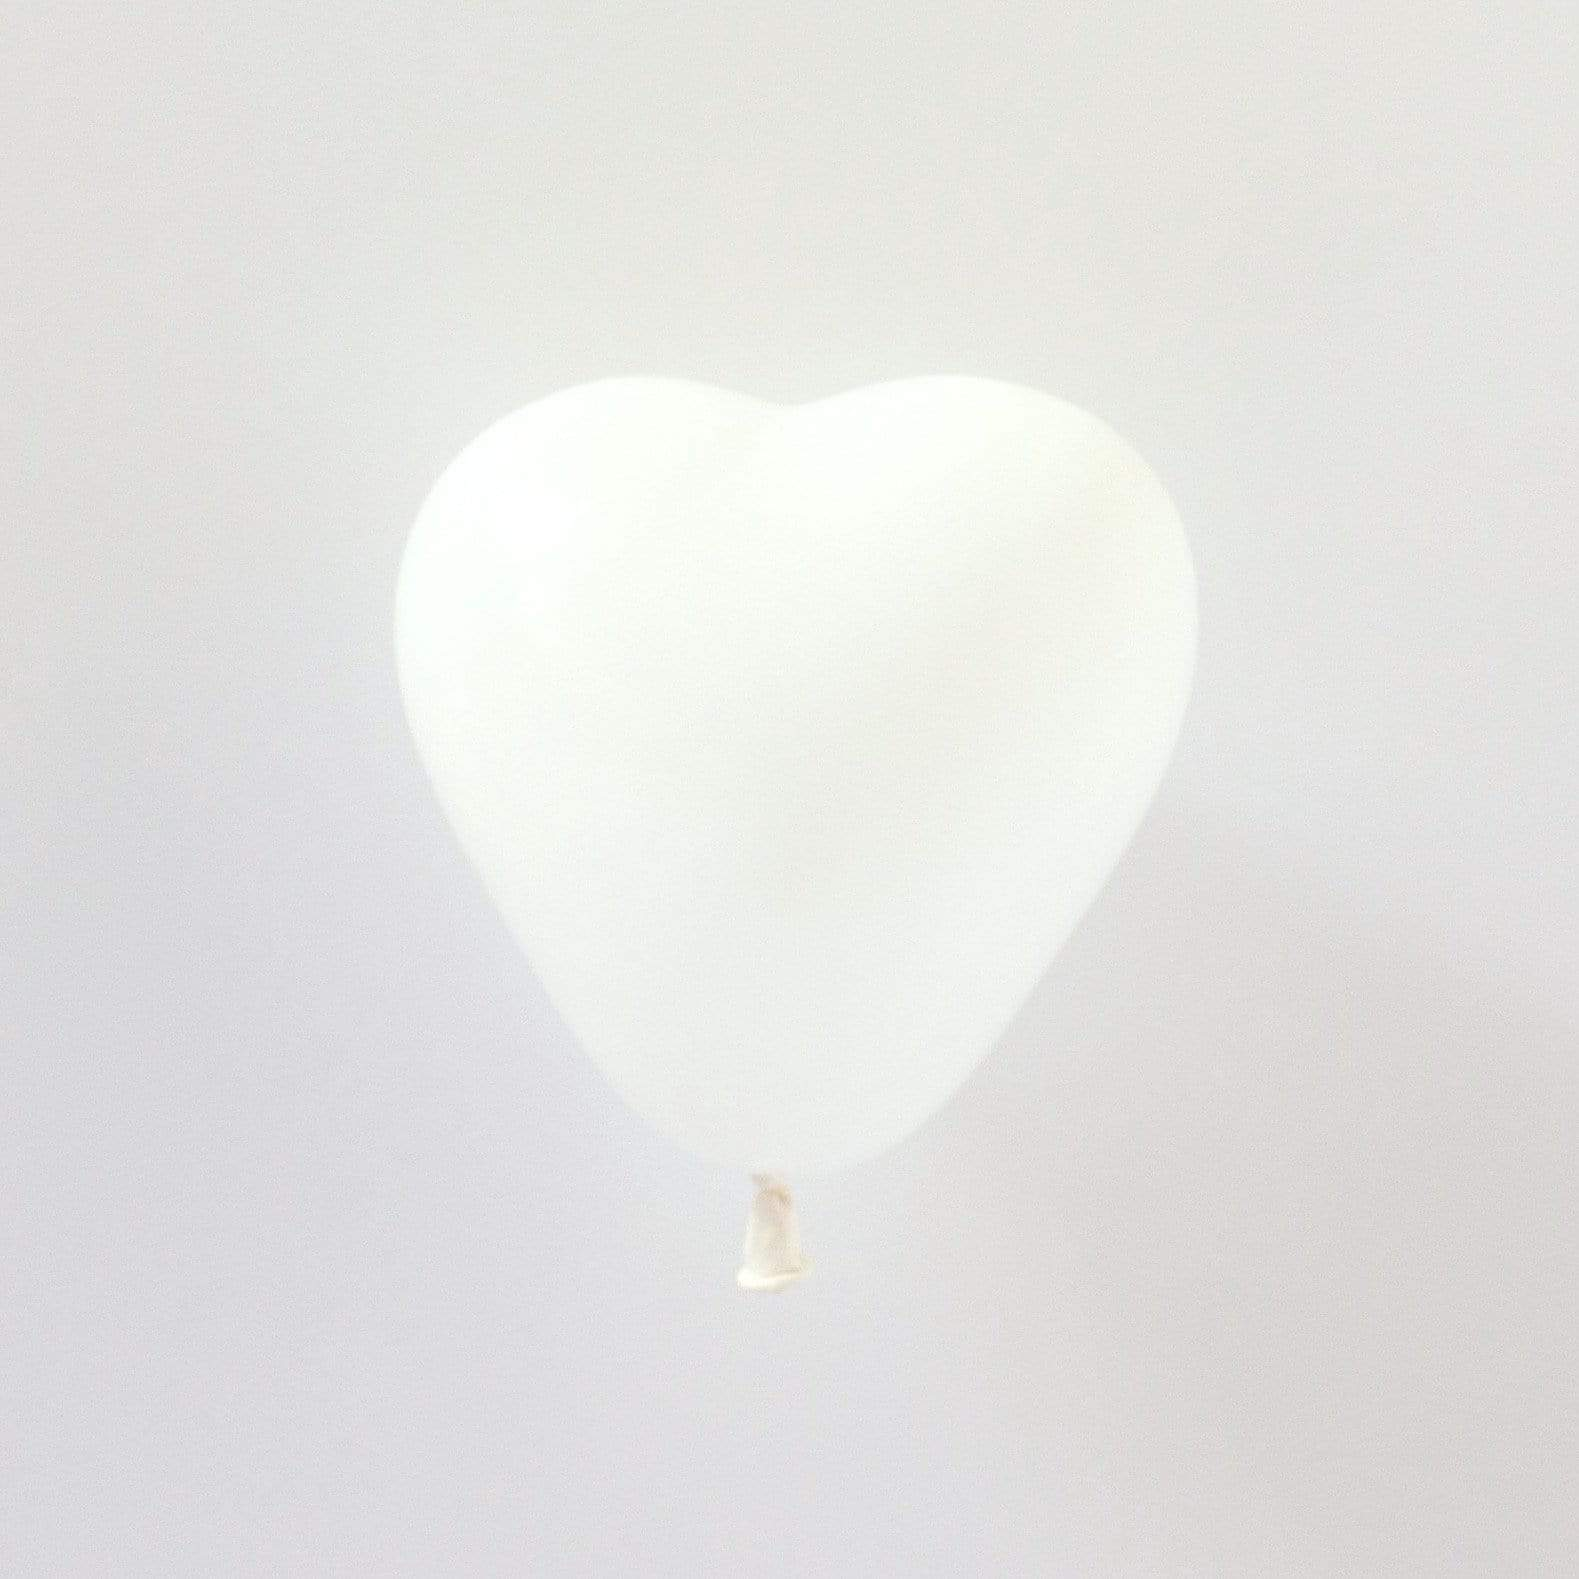 White Tiny Heart Balloons | Little Latex Heart Shaped Balloons